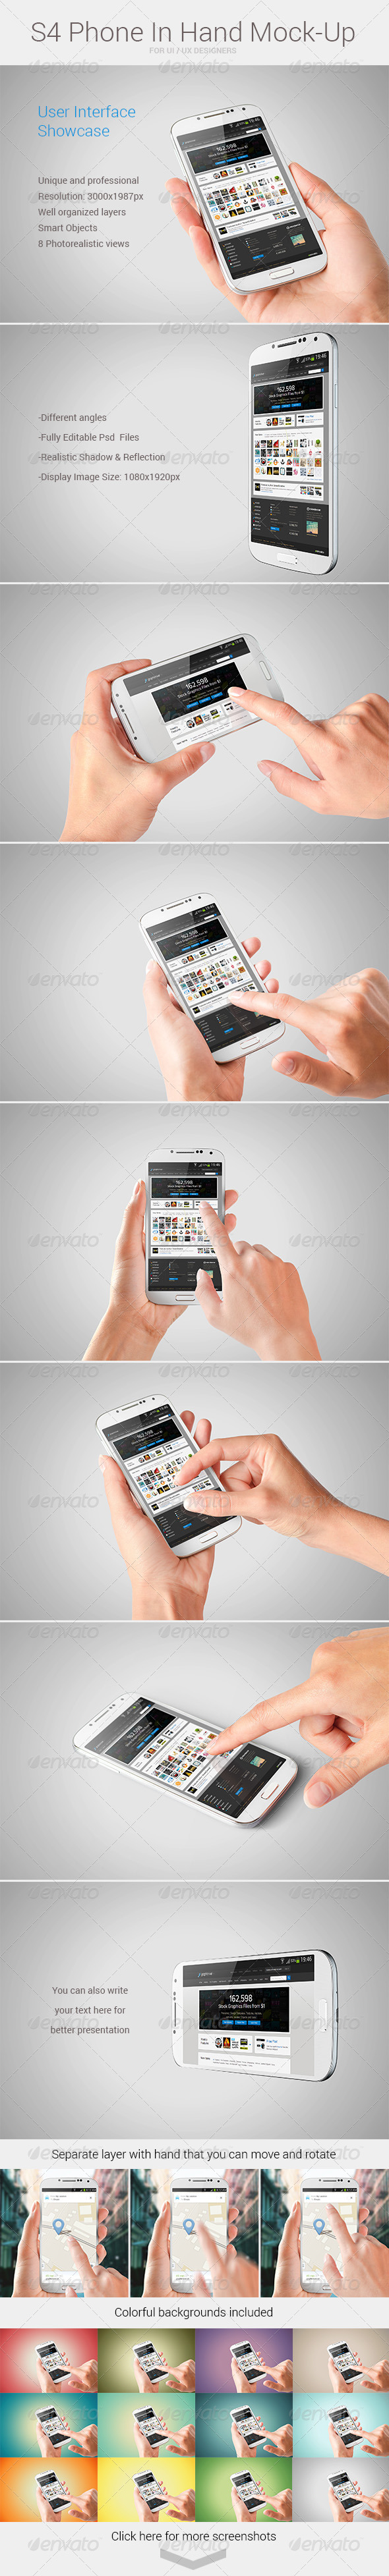 GraphicRiver S4 Phone In Hand Mock-Up 5965017